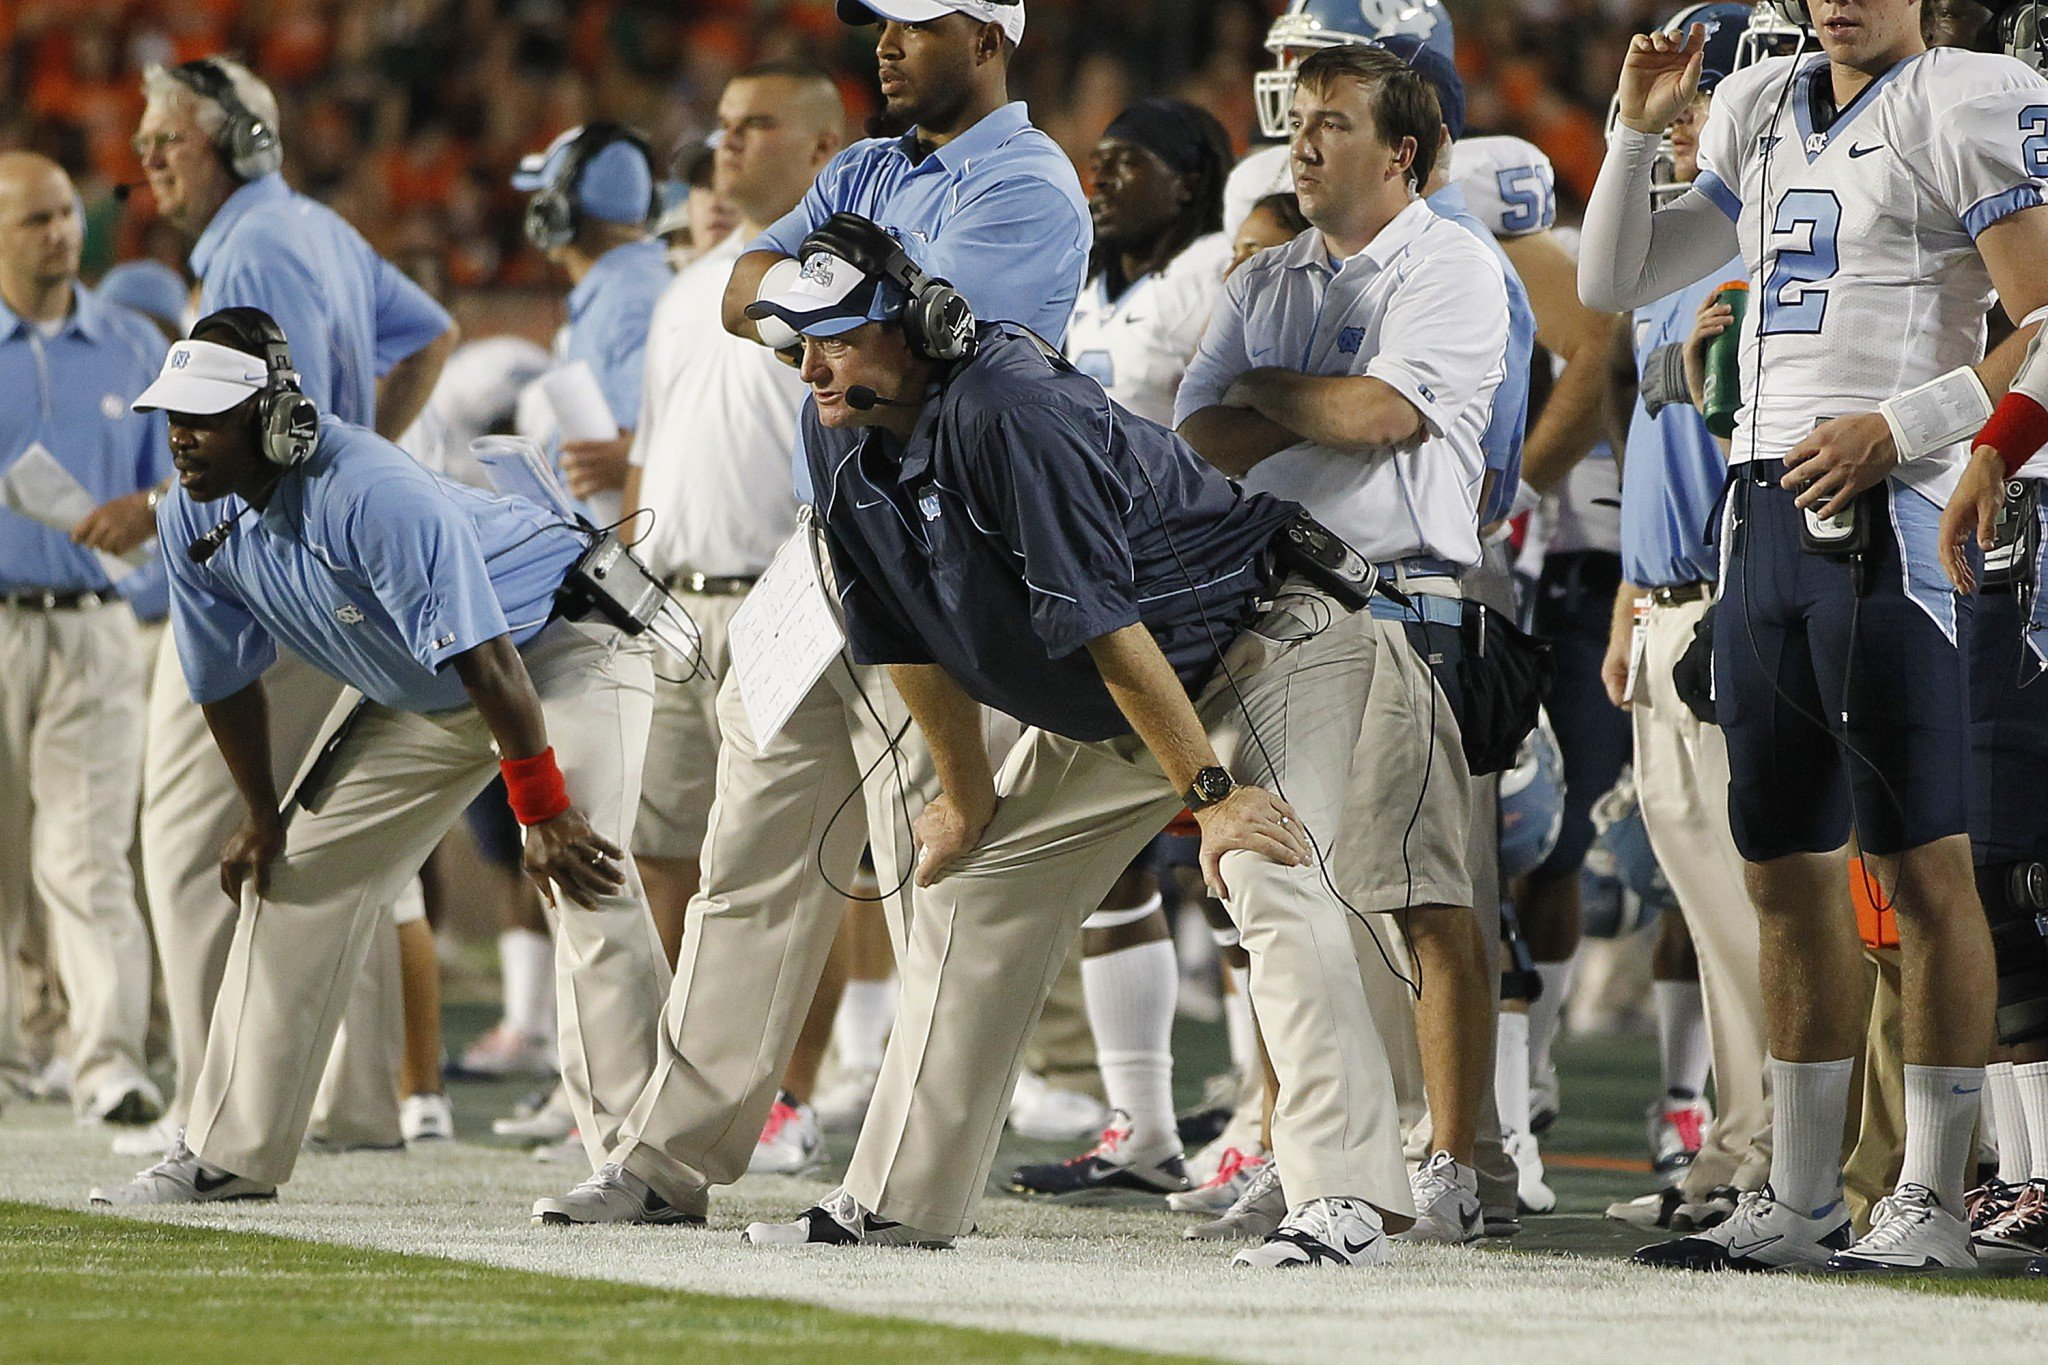 Butch Davis had a 28-23 record in four seasons at North Carolina. (Photo by Joel Auerbach/Getty Images)